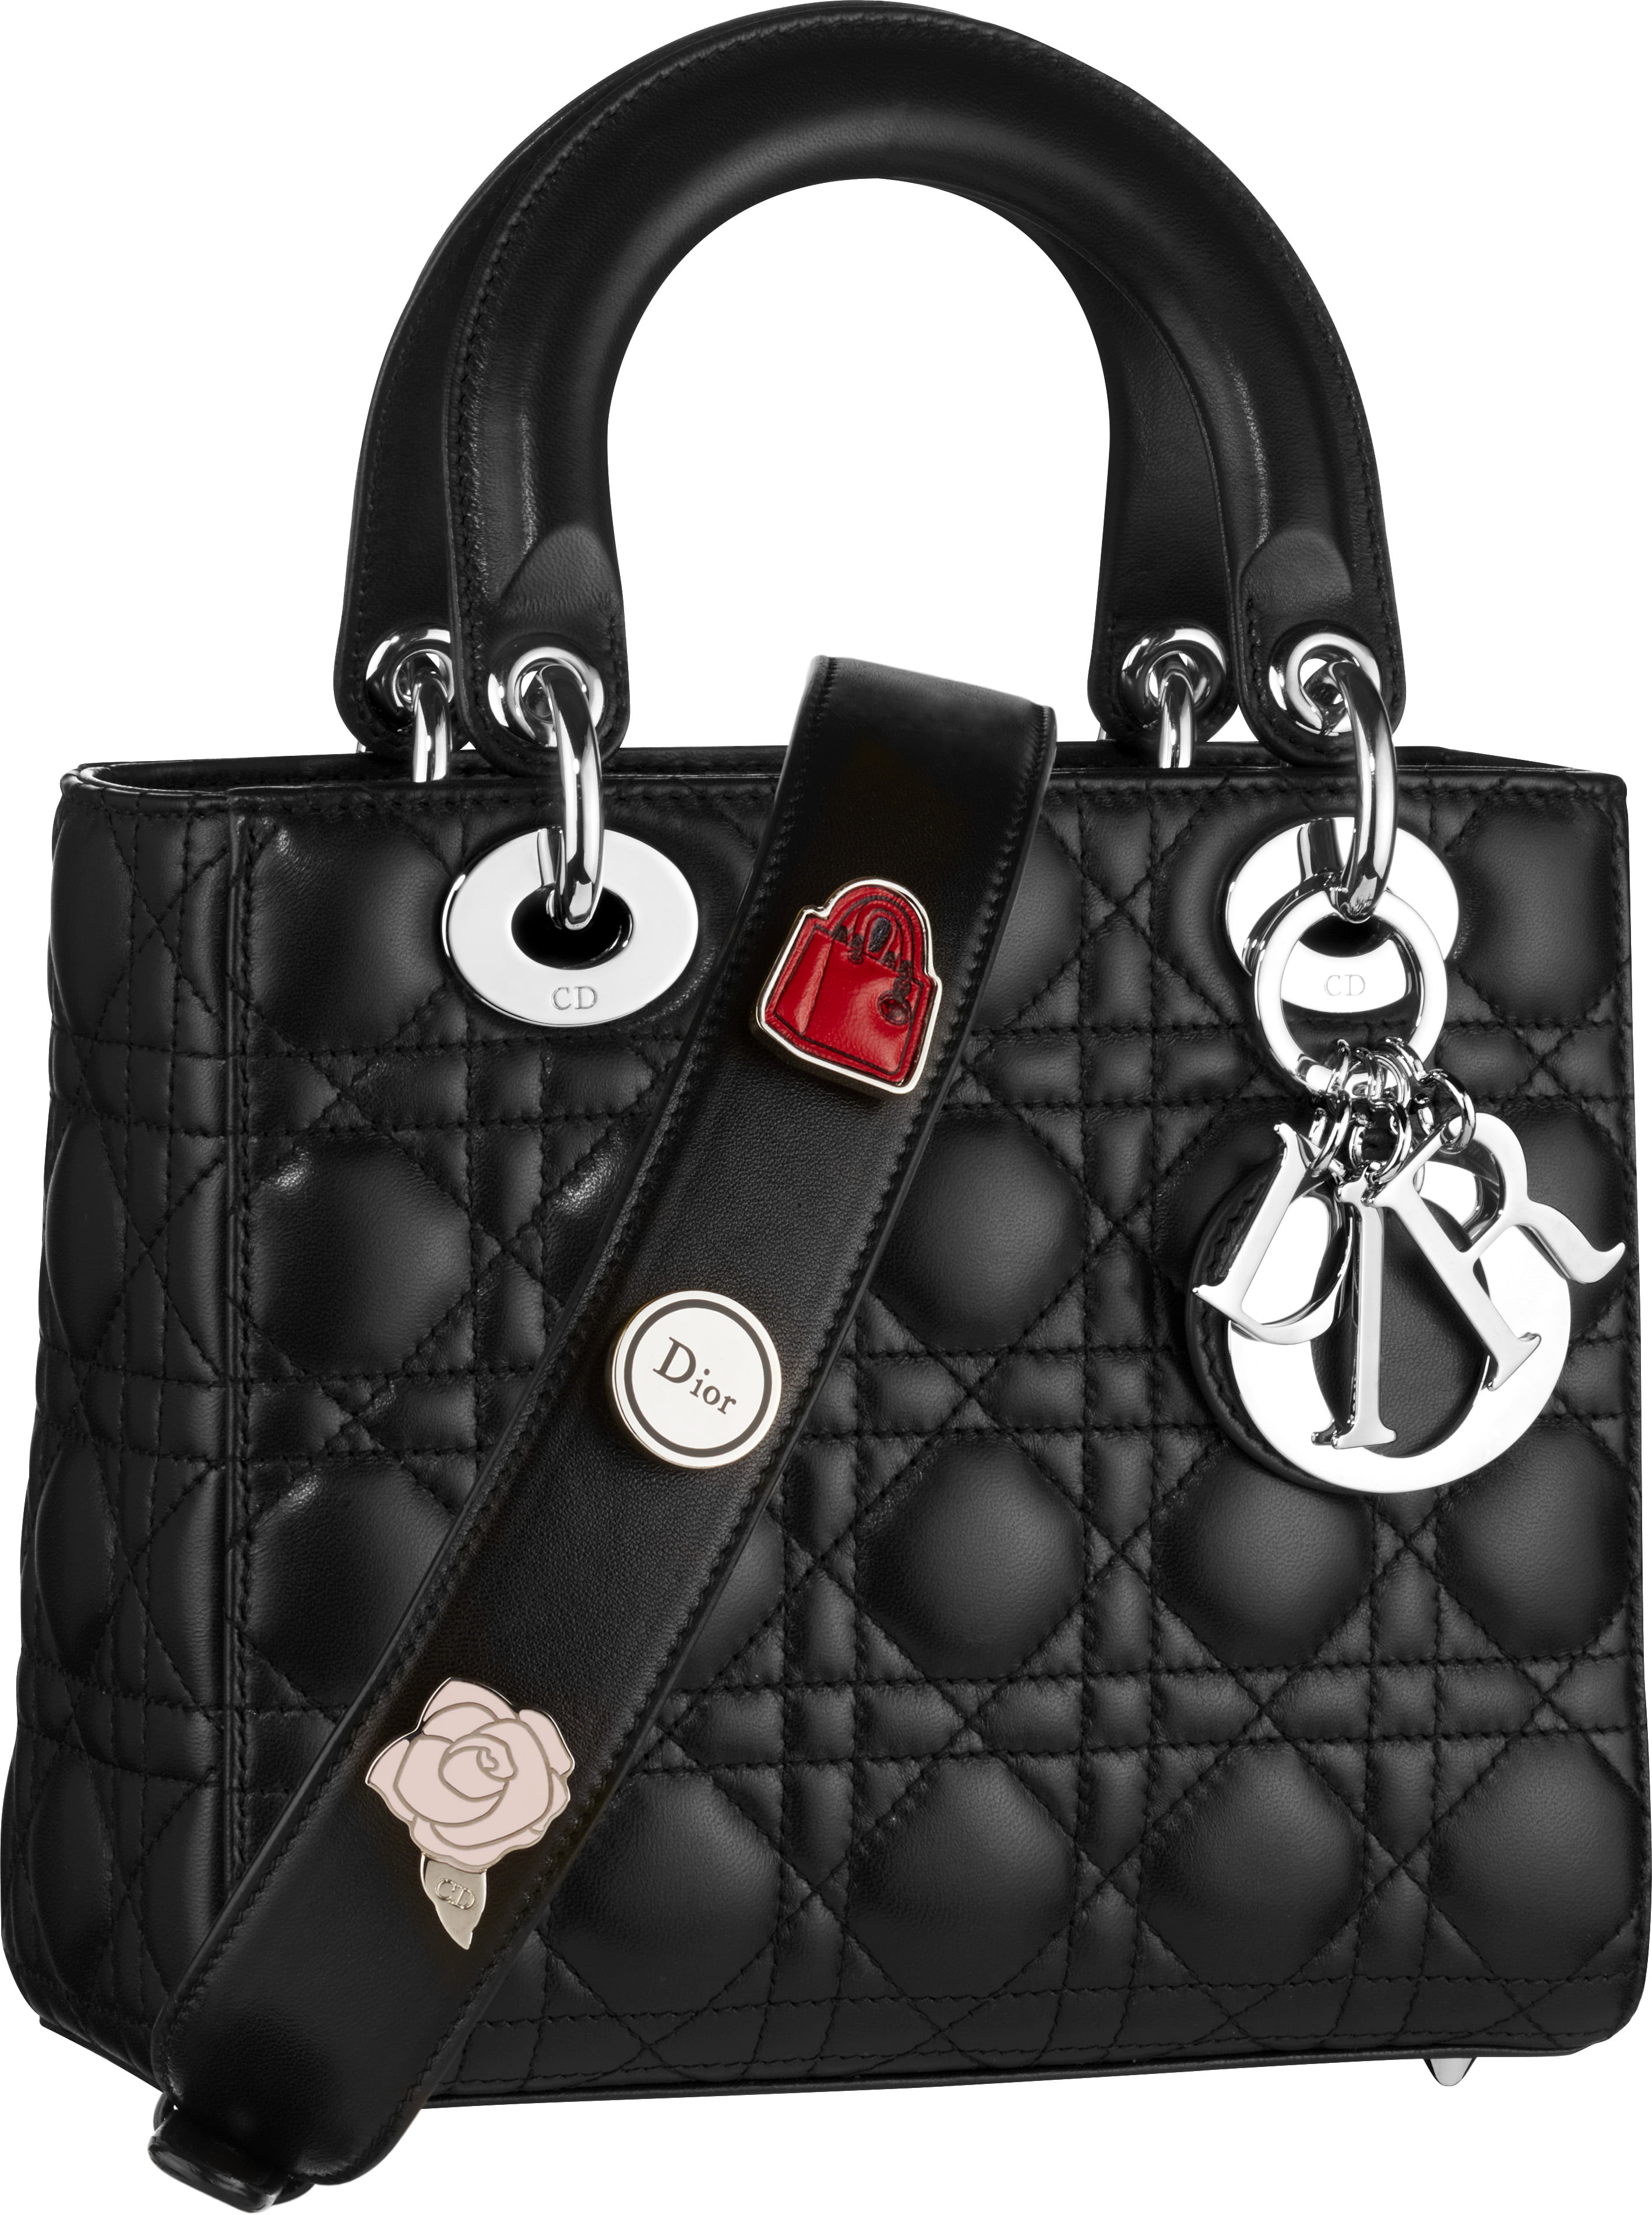 The Cruise 2017 collection Lady Dior bags will feature multiple pins that  can be interchanged along the strap. 87446d5cb3